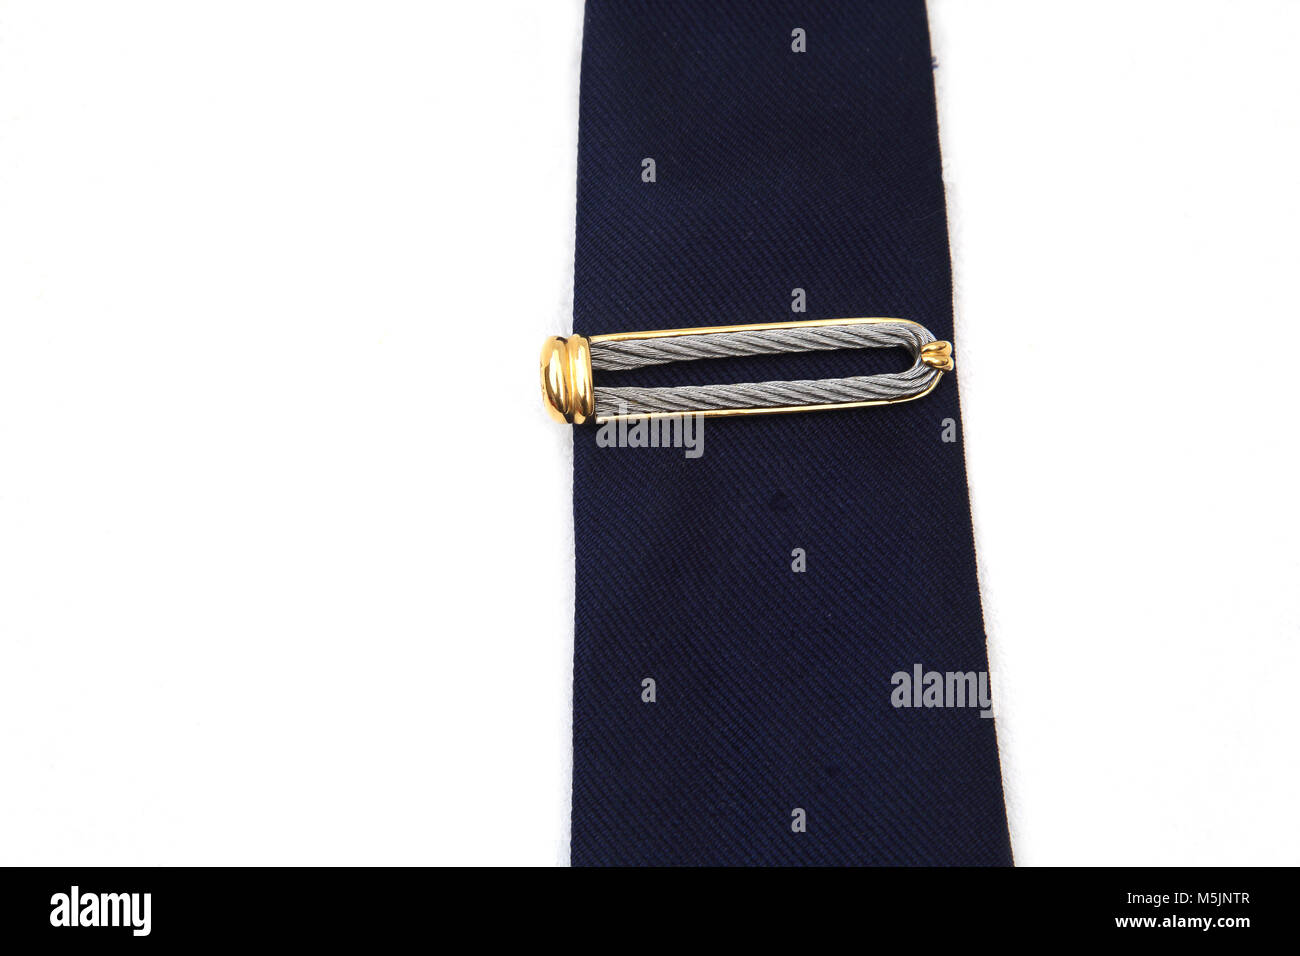 Stainless Steel, Silver And Gold Plated Charriol Tie Pin On Blue Tie Stock Photo